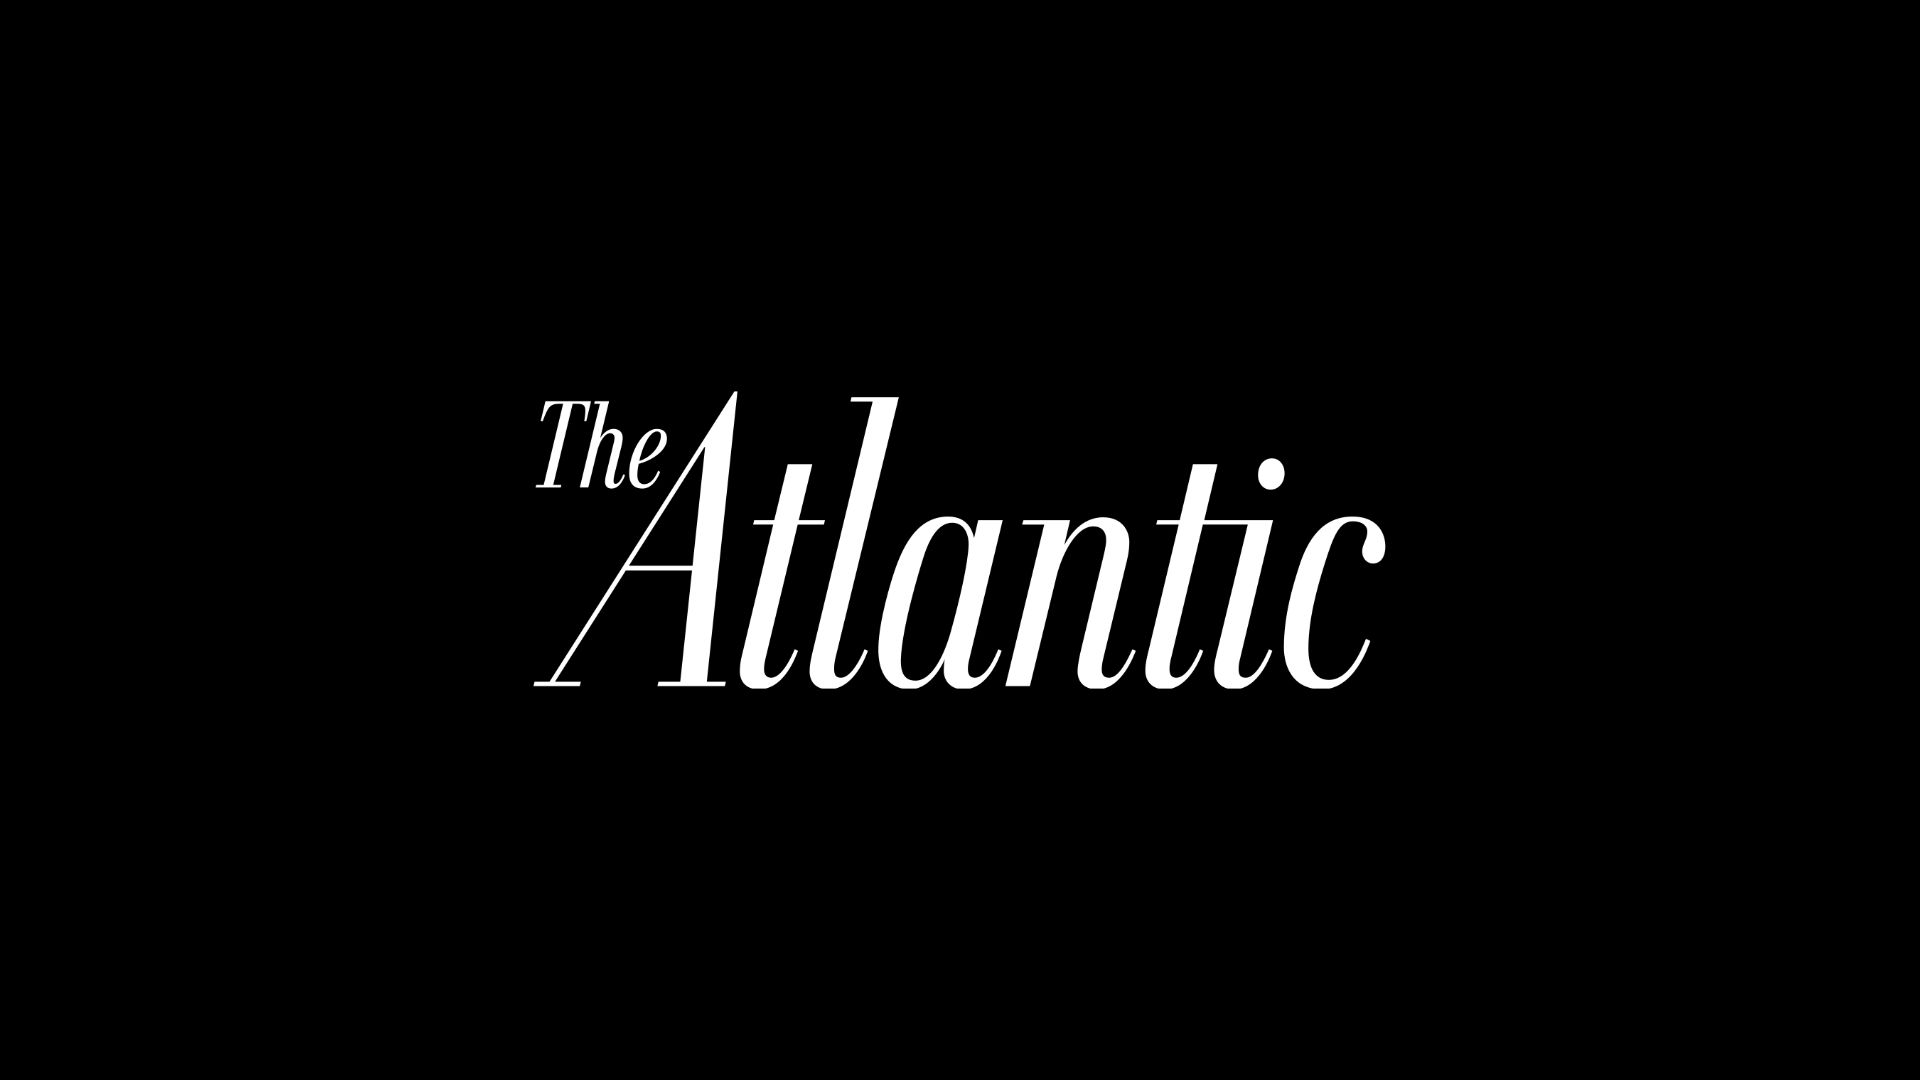 The Atlantic Cover Photo in Color